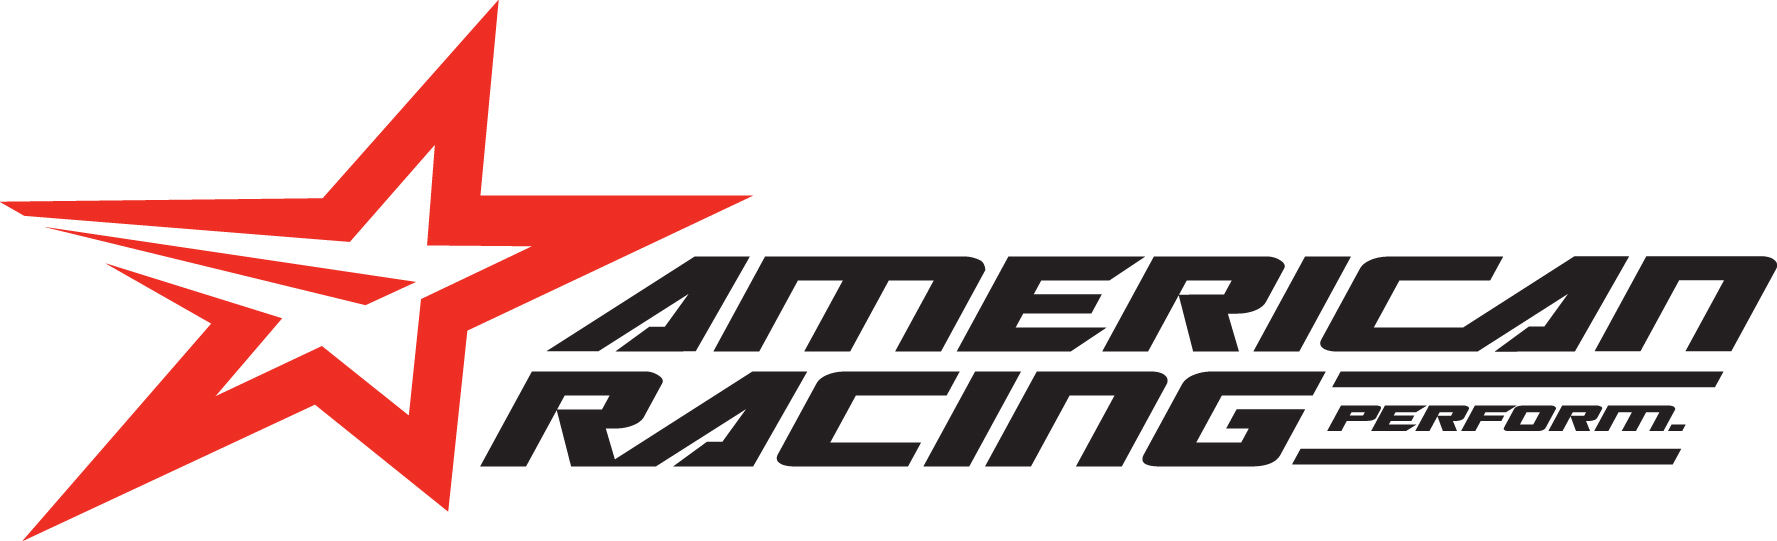 car racing logos clipart best